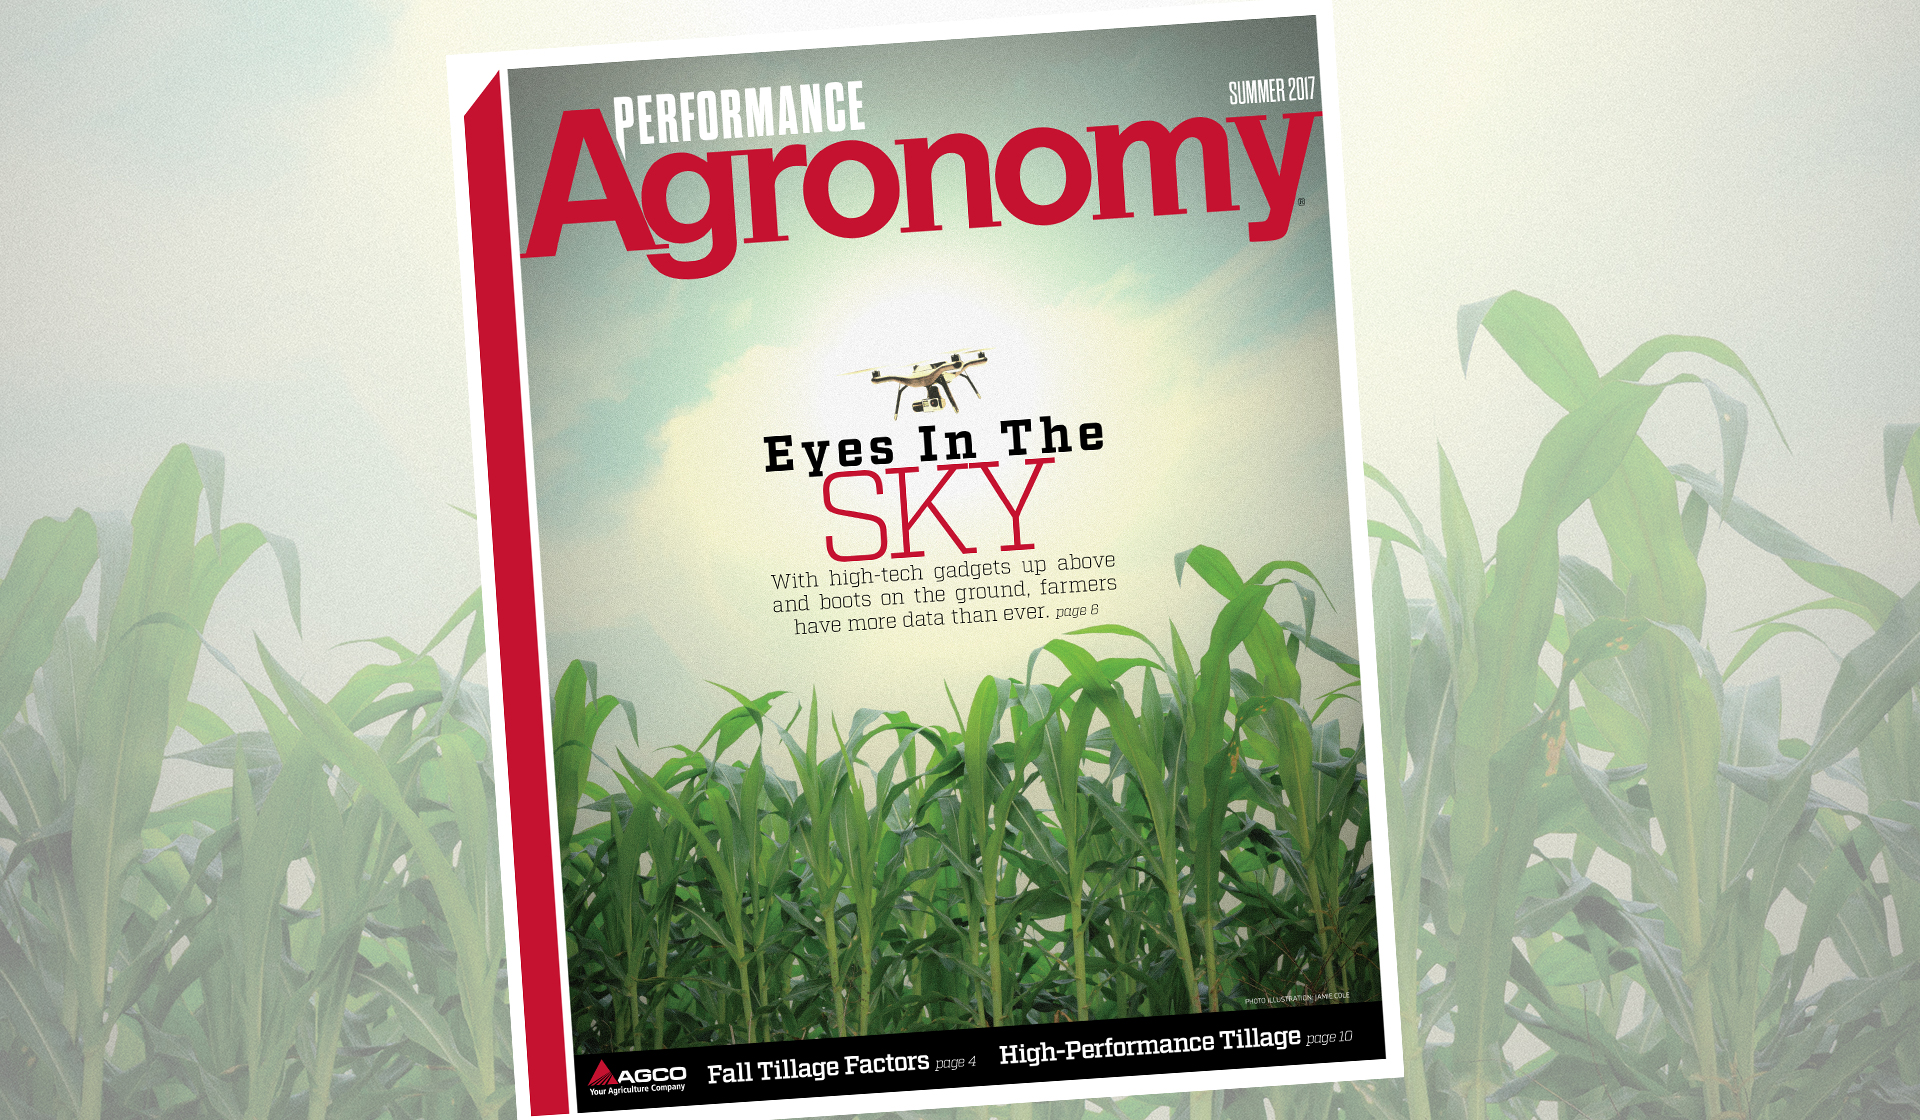 Performance Agronomy - Issue 7